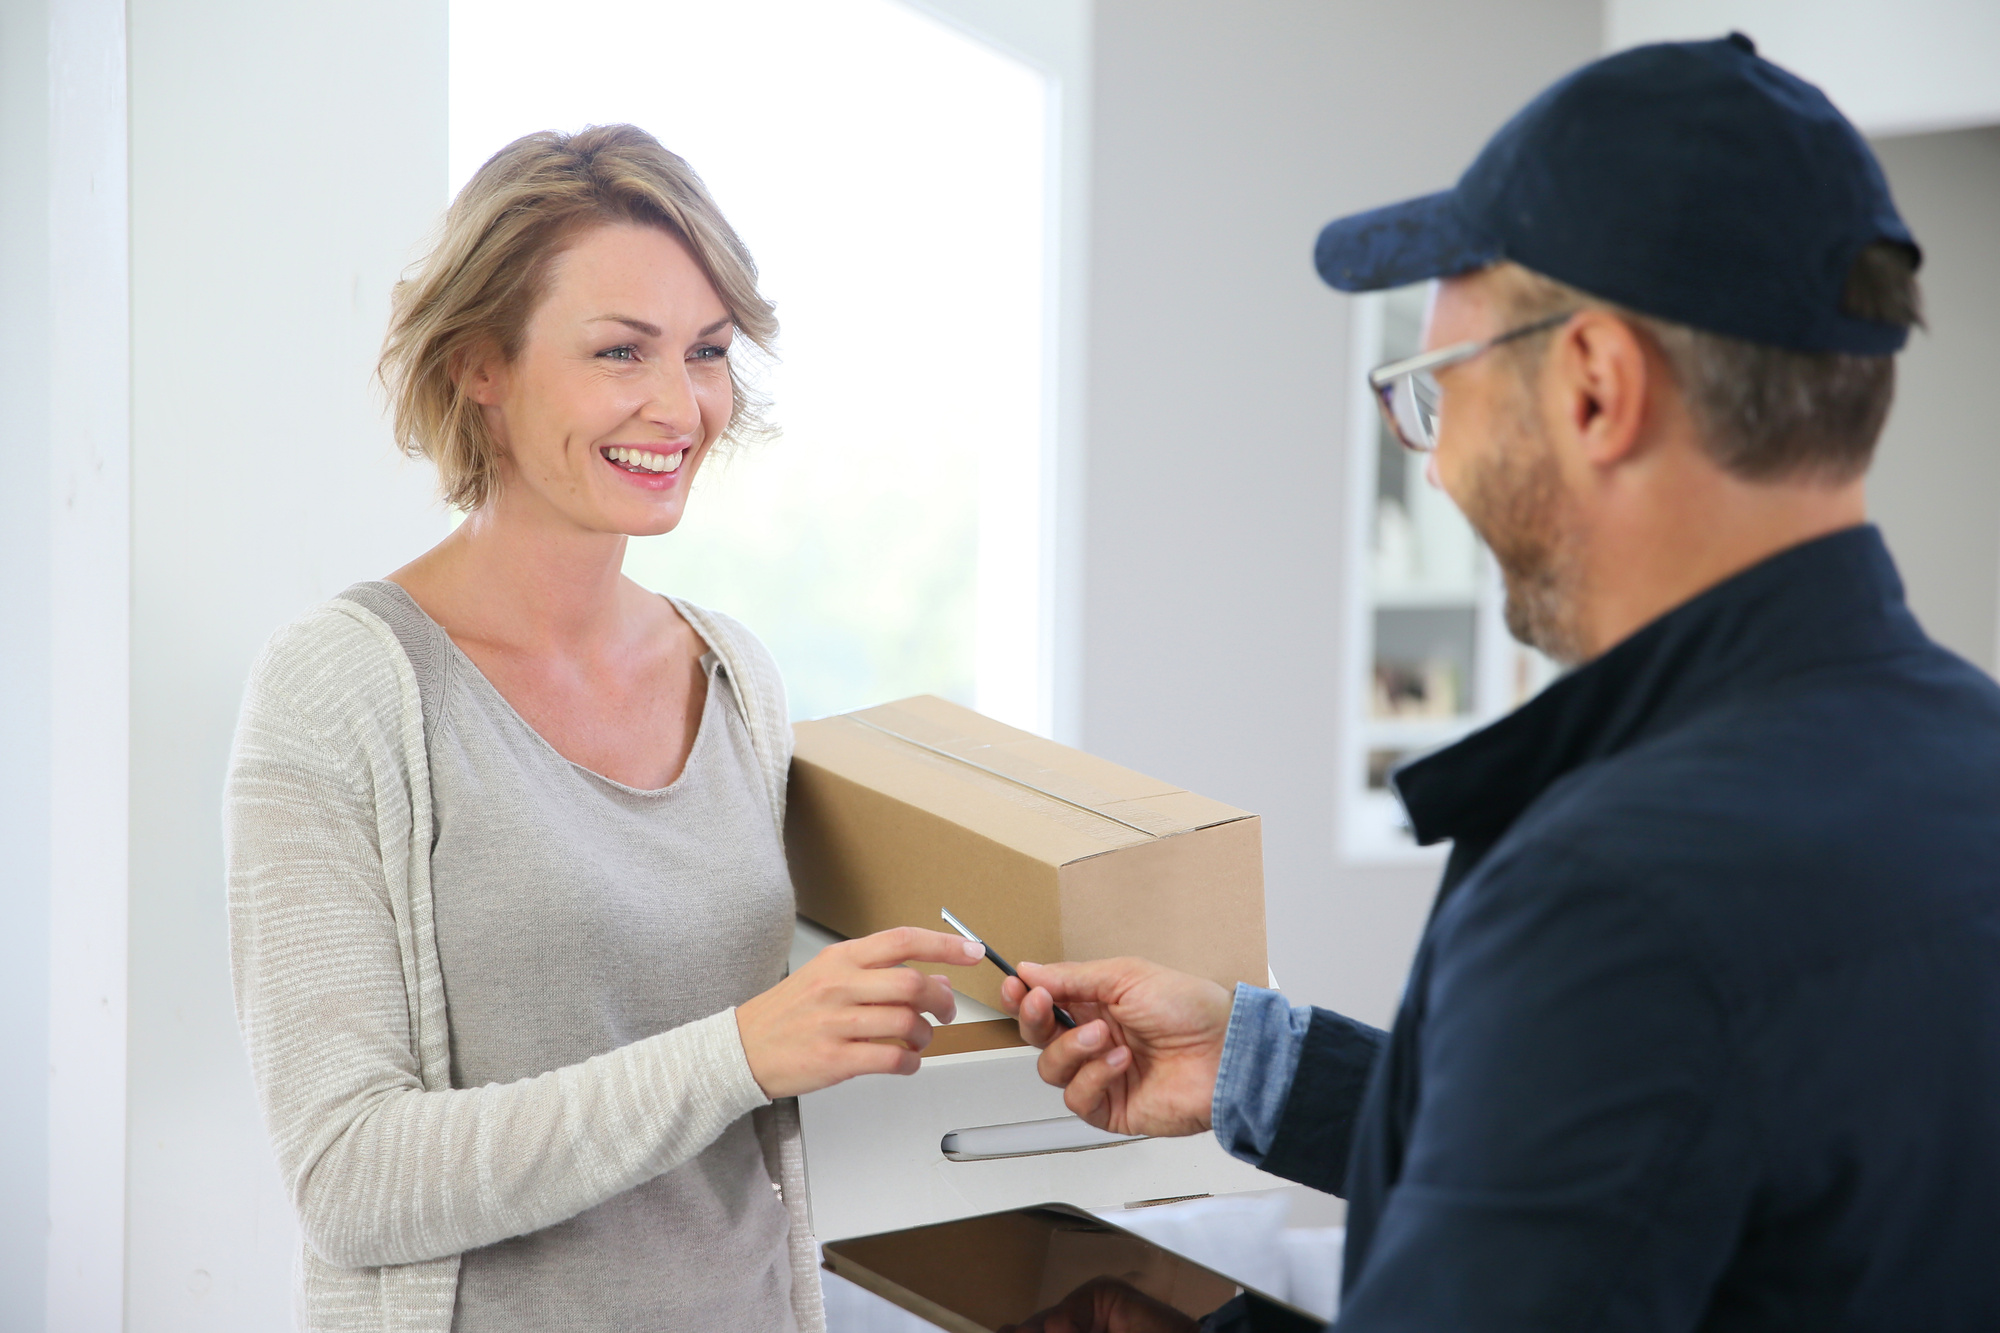 epacket countries woman recieving package